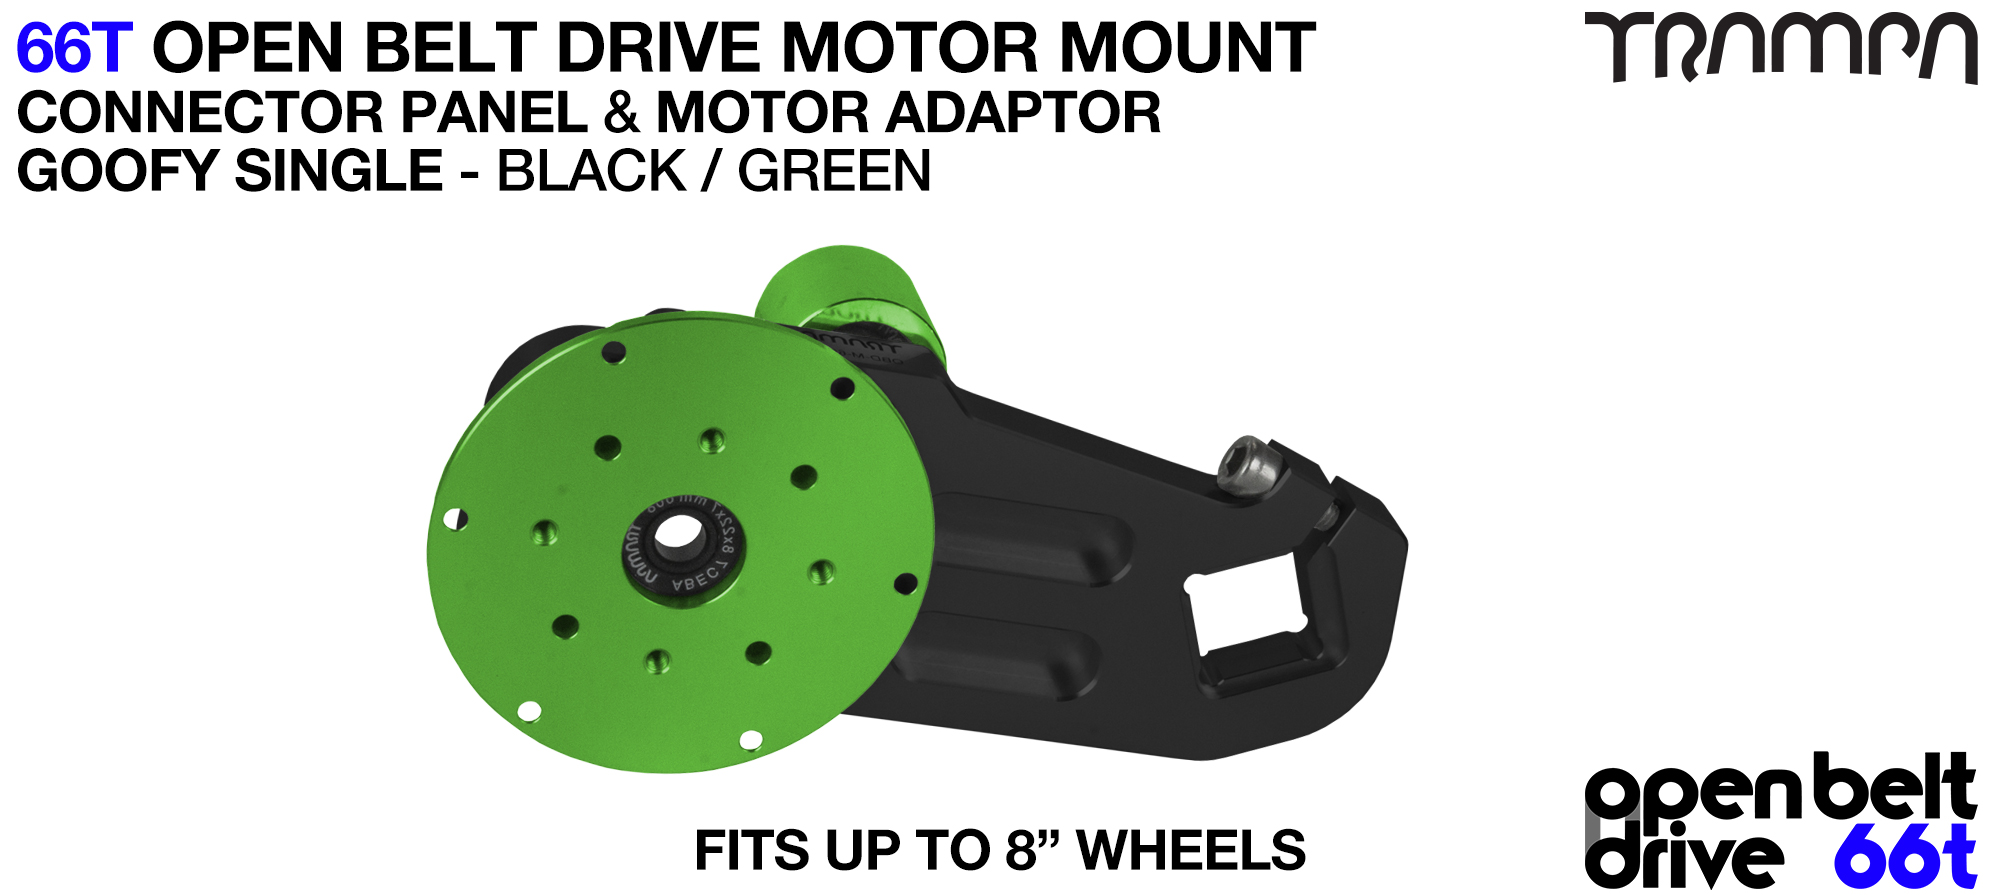 66T OPEN BELT DRIVE Motor Mount & Motor Adaptor - SINGLE GREEN